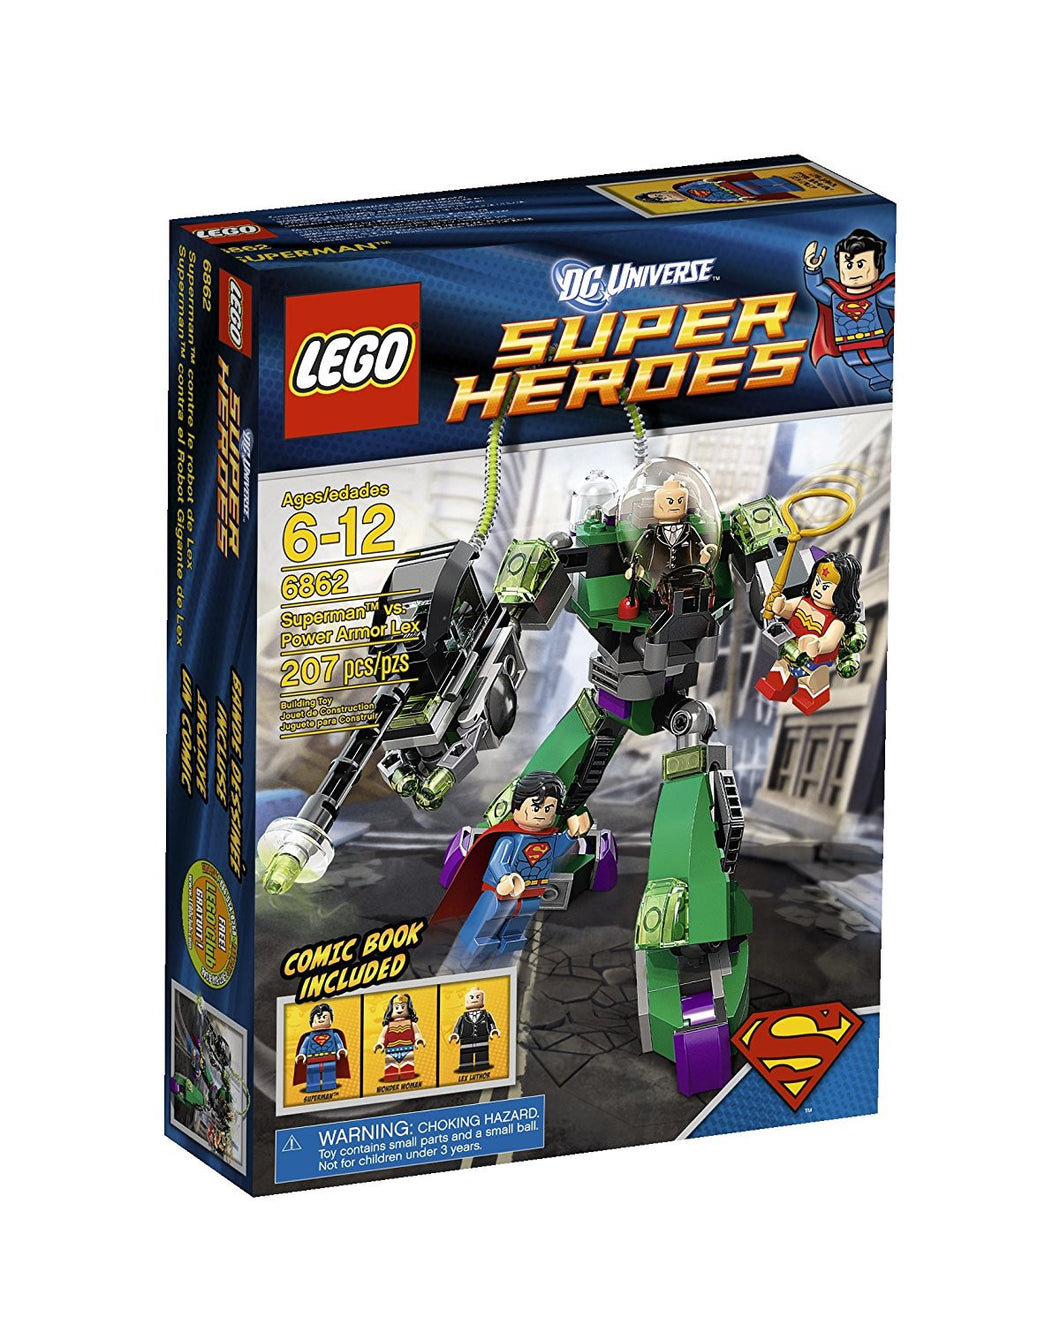 LEGO Super Heroes Superman Vs Power Armor Lex 6862 (Discontinued by manufacturer)